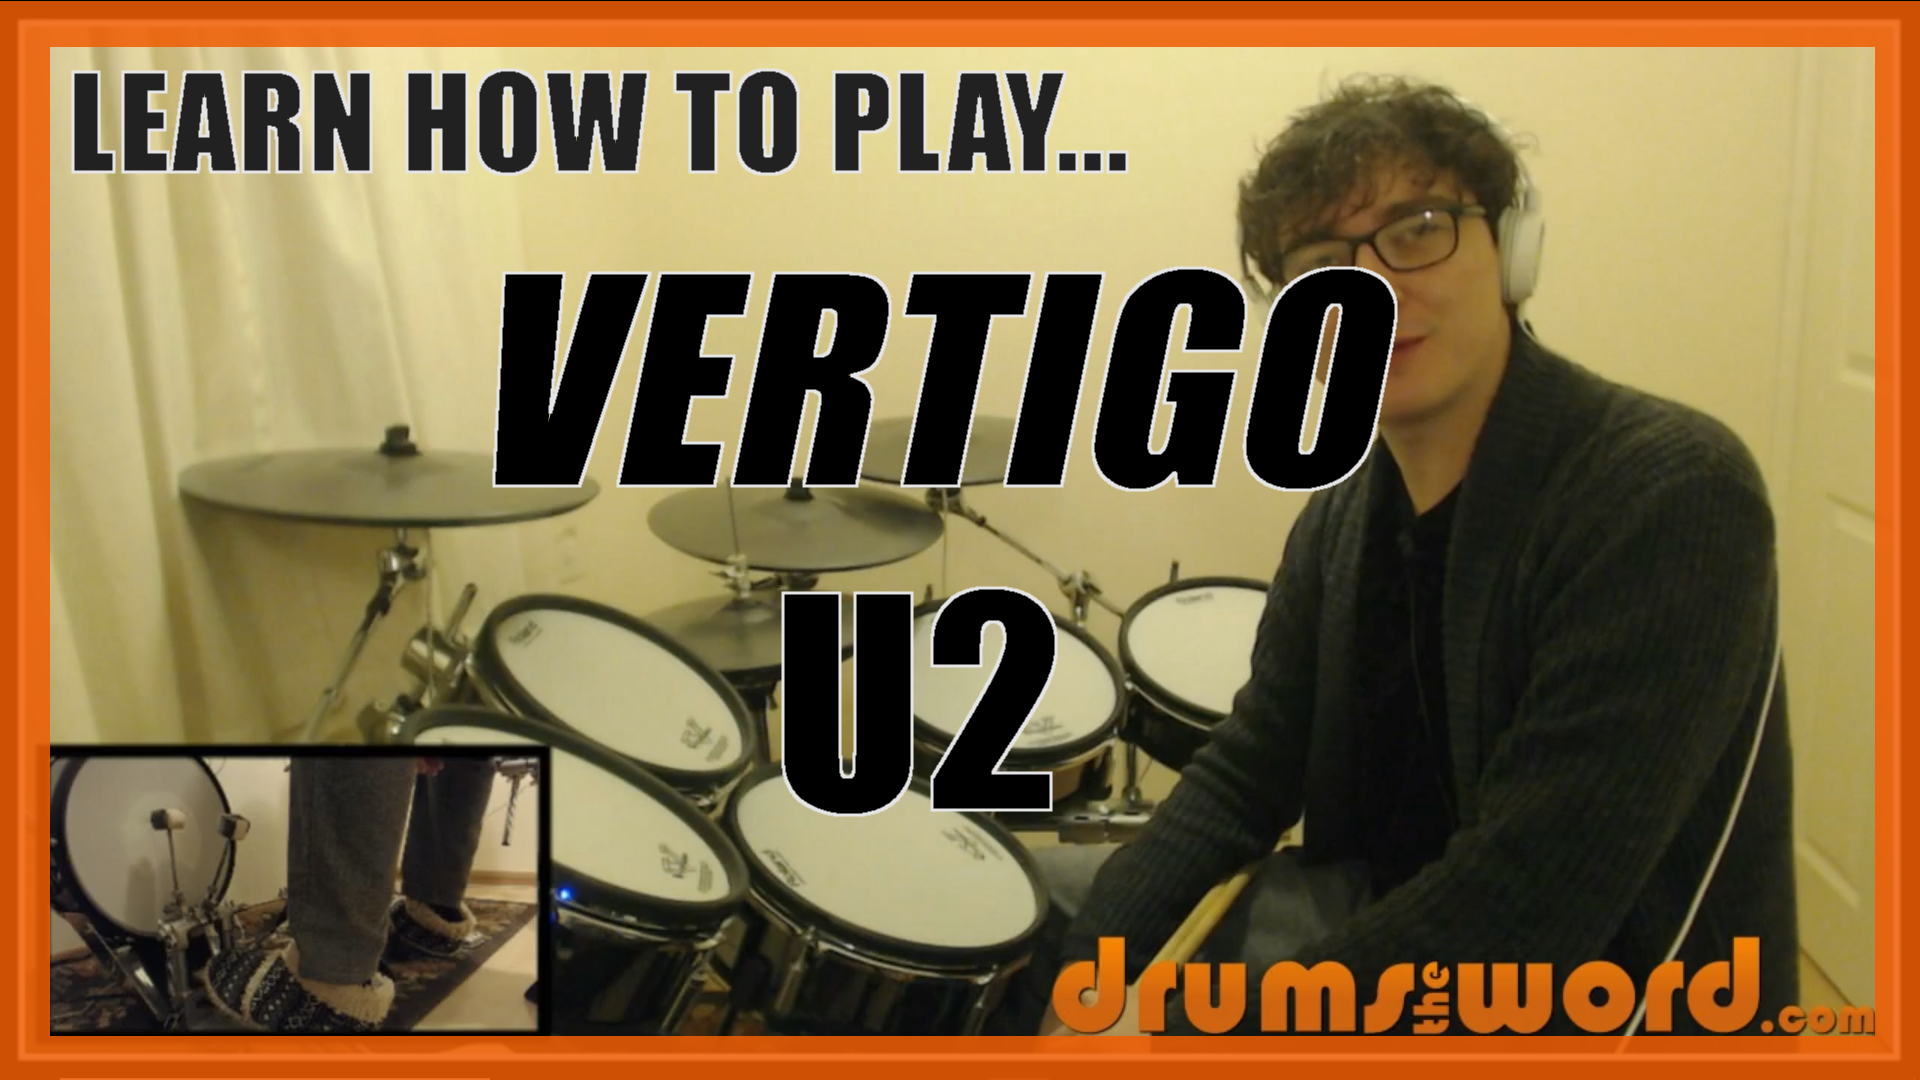 VERTIGO (U2: Larry Mullen Jr )